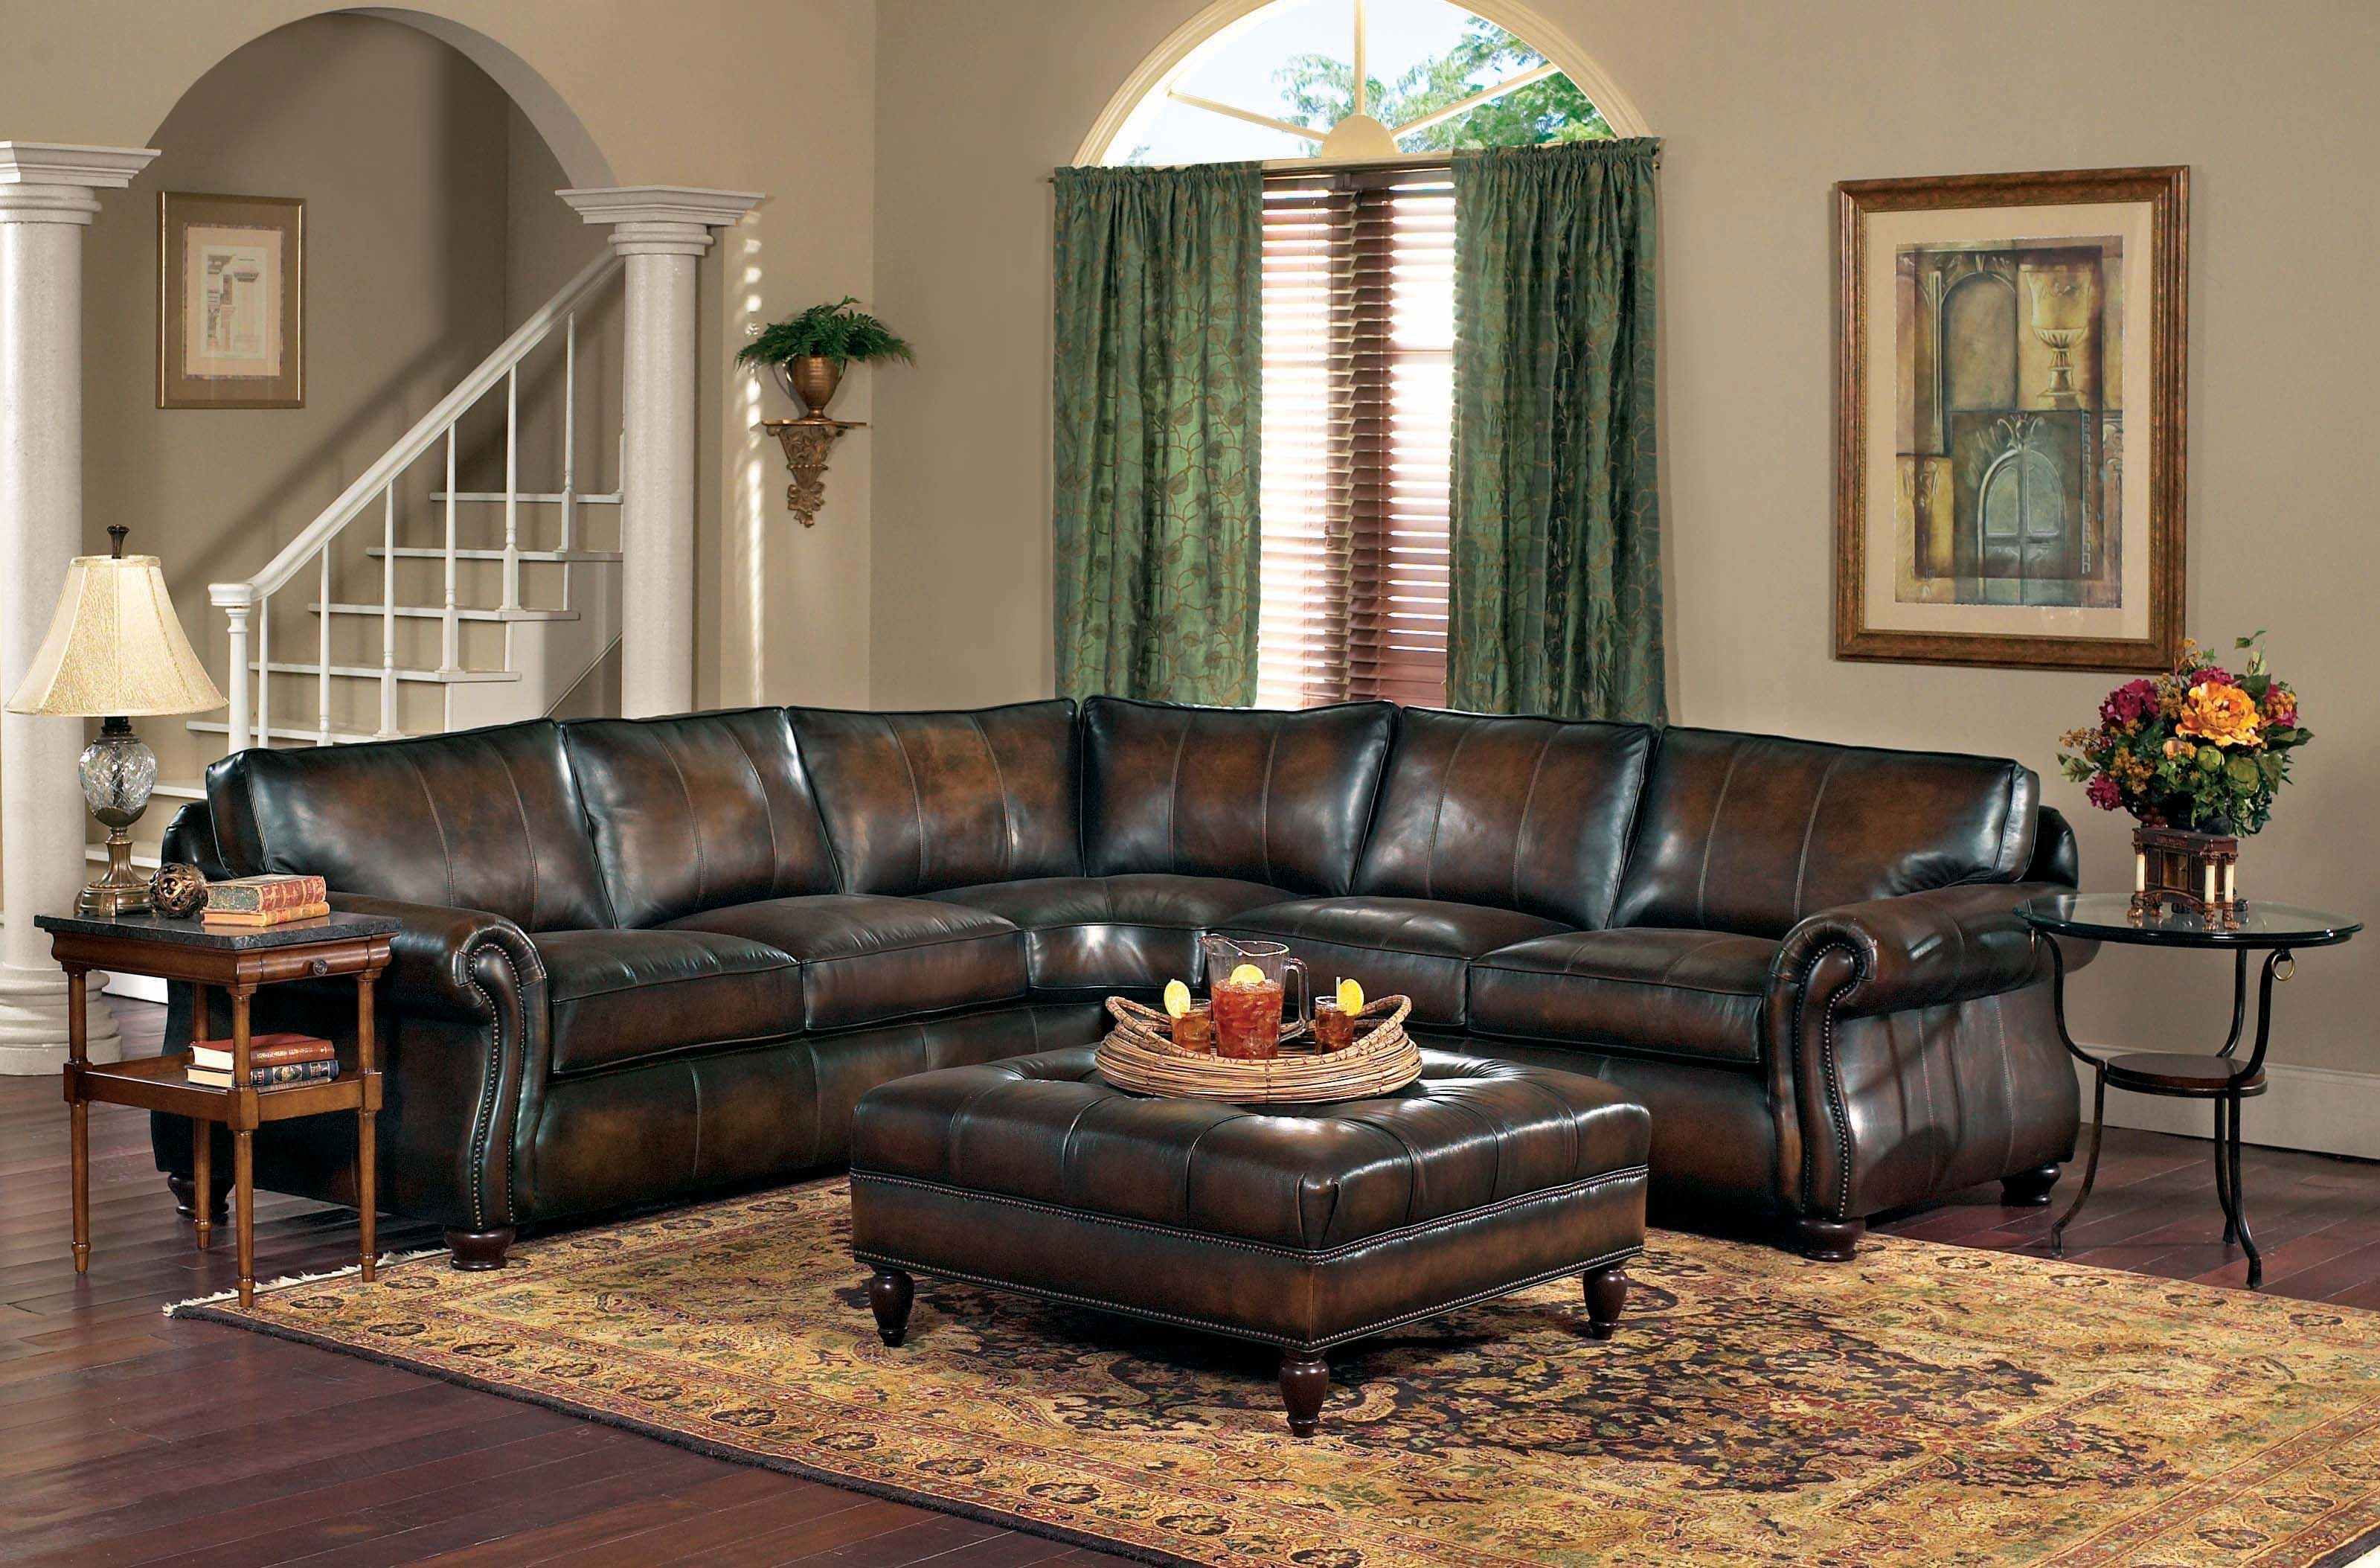 Ordinaire Van Gogh 2 Piece Leather Sectional KT:37184